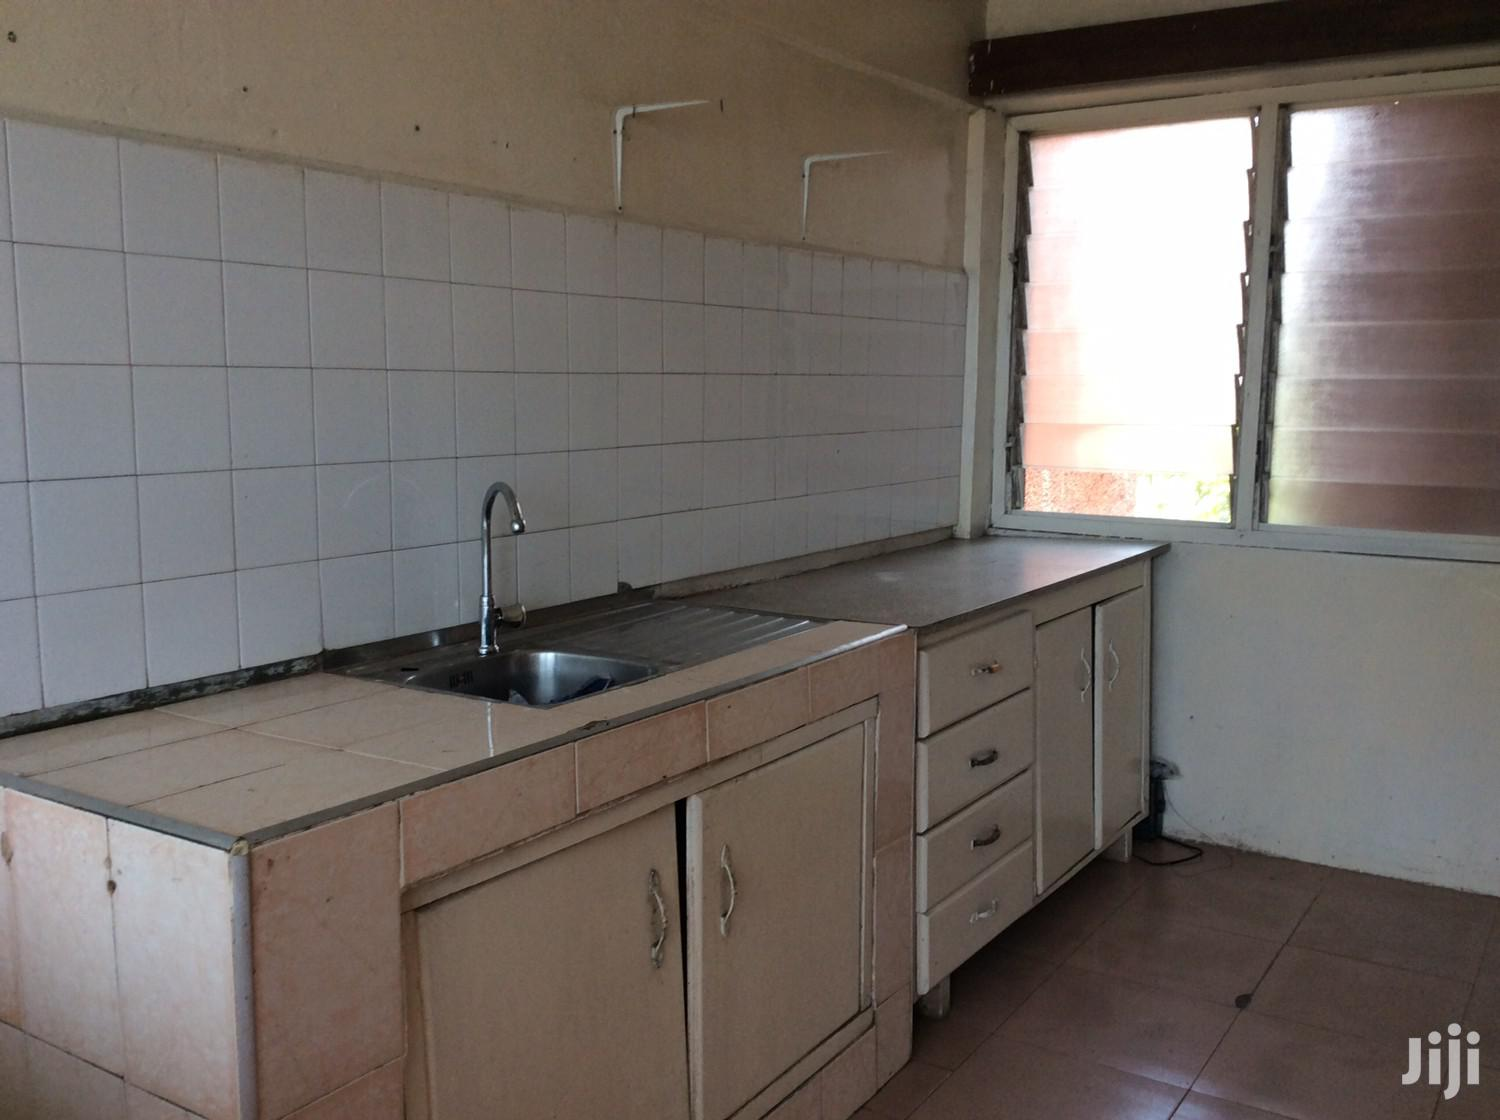 2 Bedroom Sakumono Flats for Sale | Houses & Apartments For Sale for sale in Tema Metropolitan, Greater Accra, Ghana